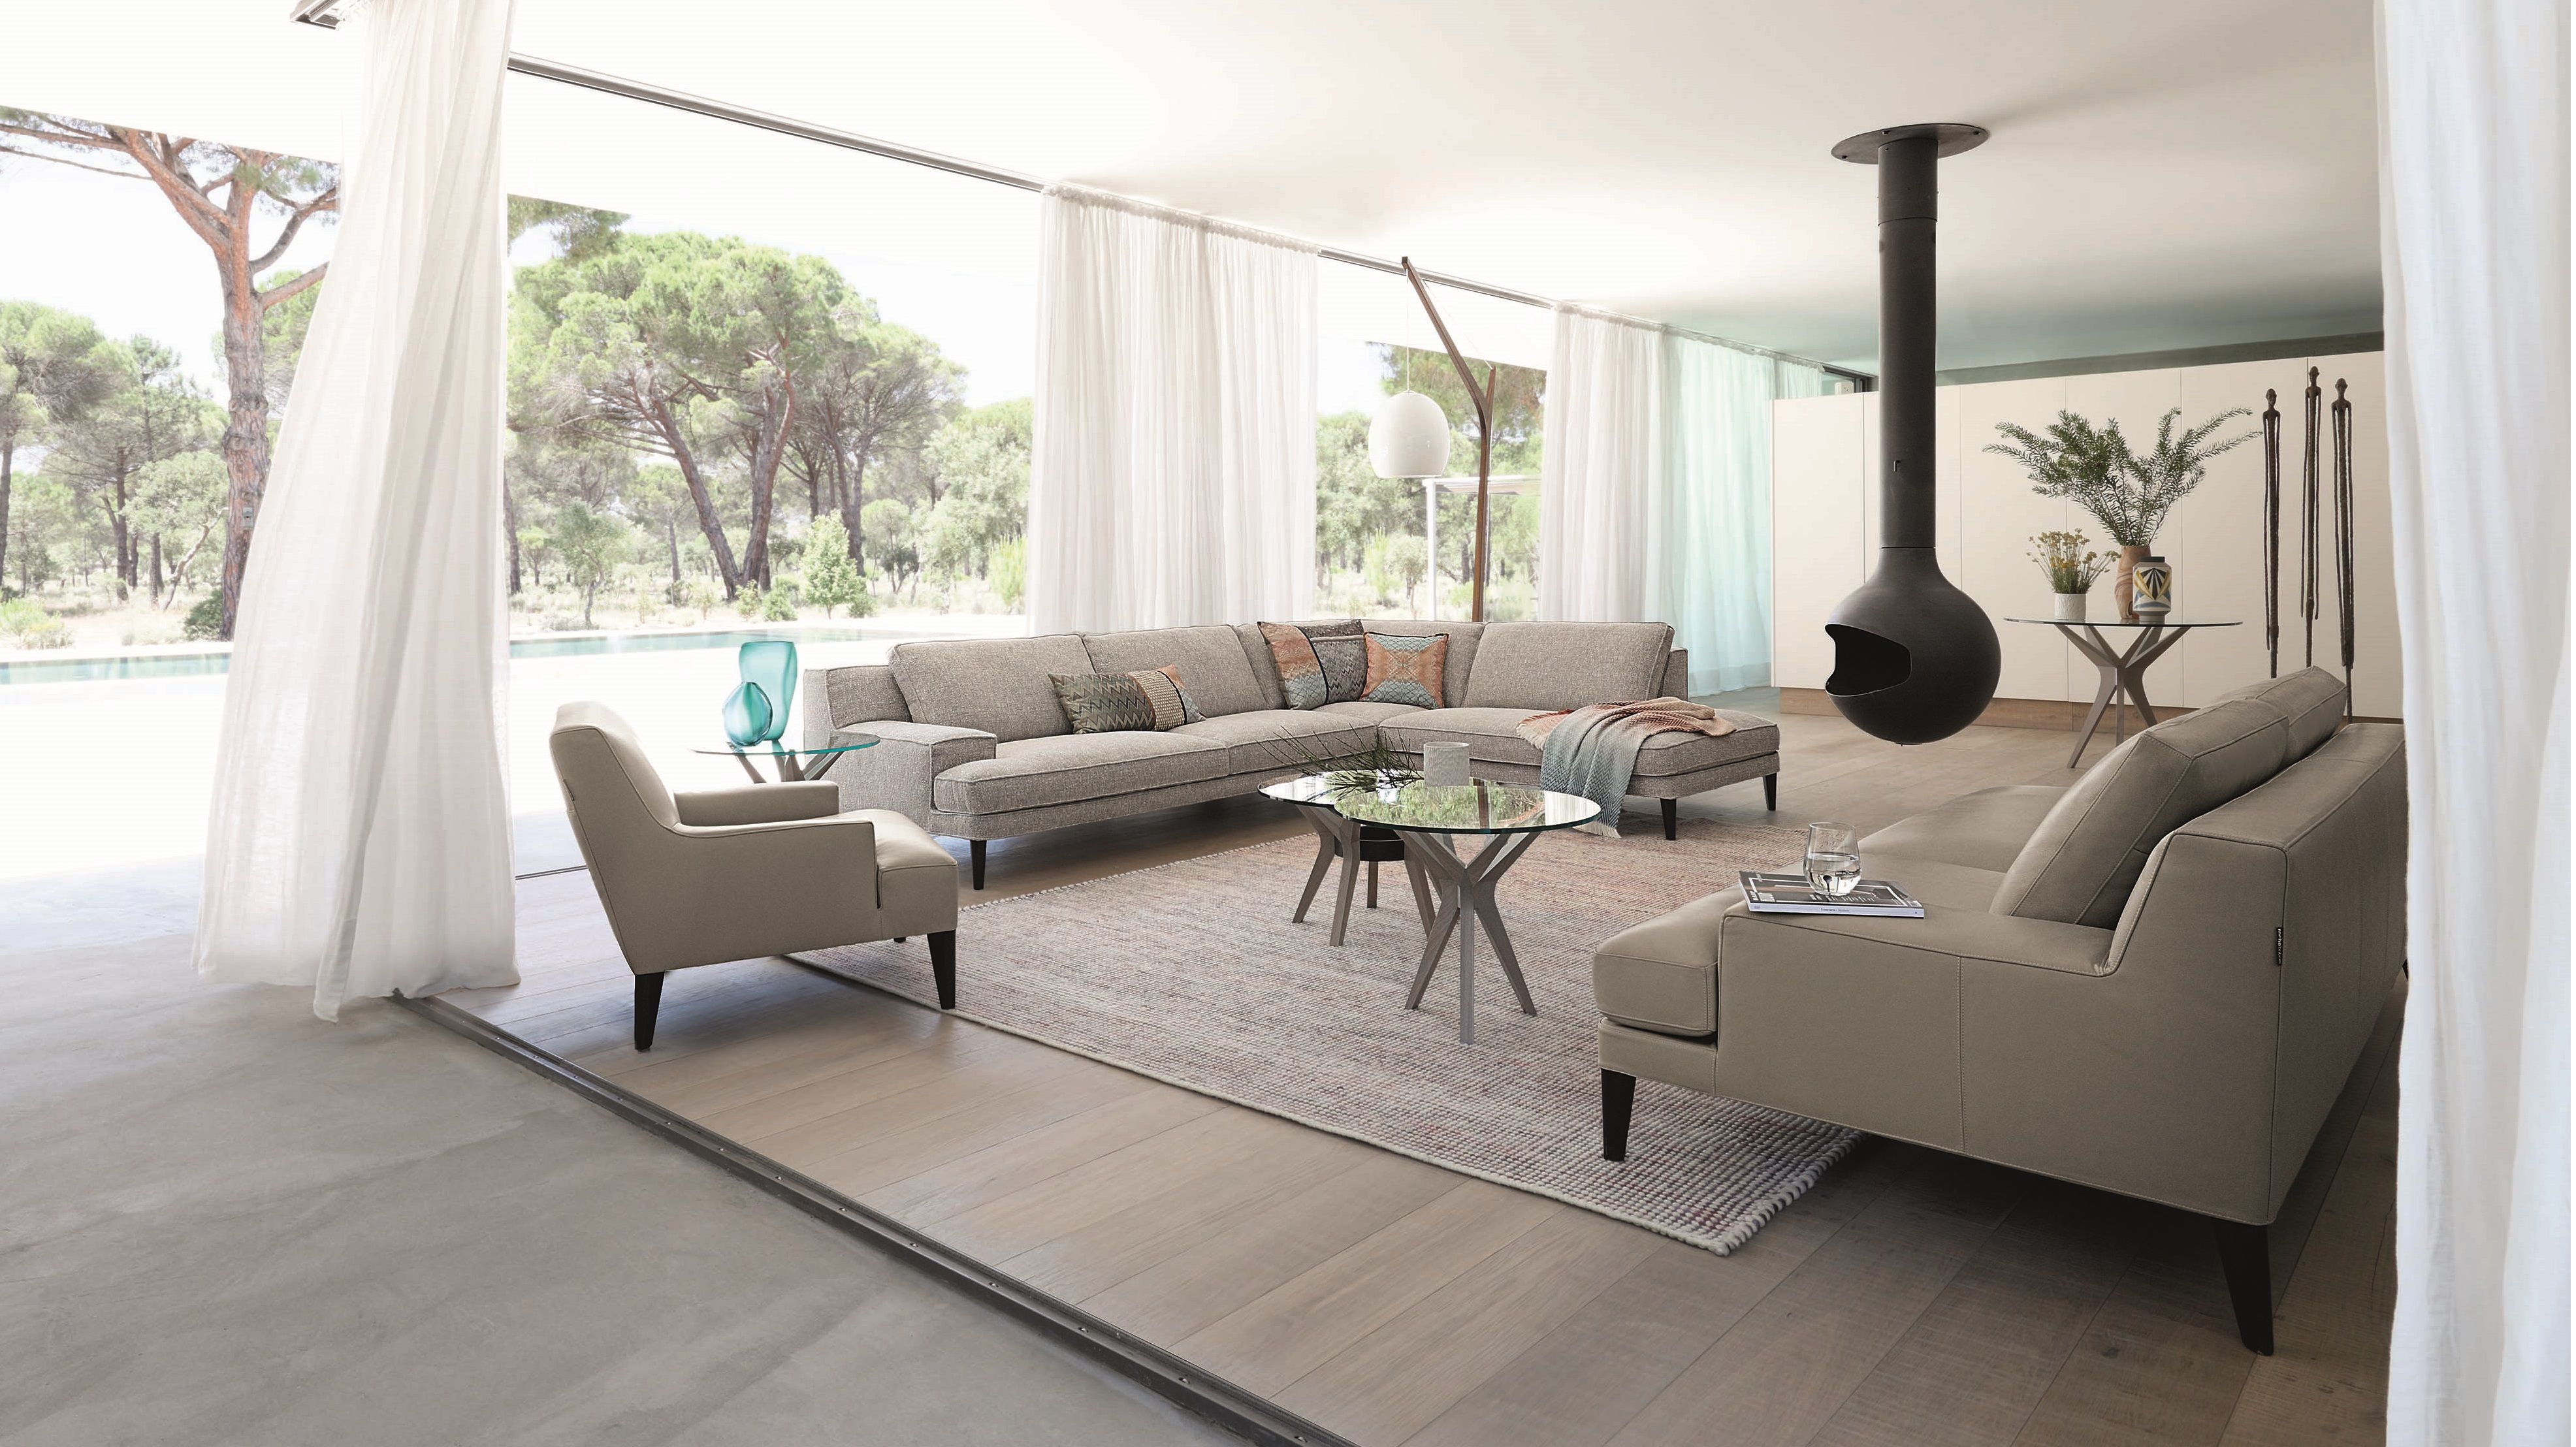 Roche Bobois Playlist Sofa Designed By Castello